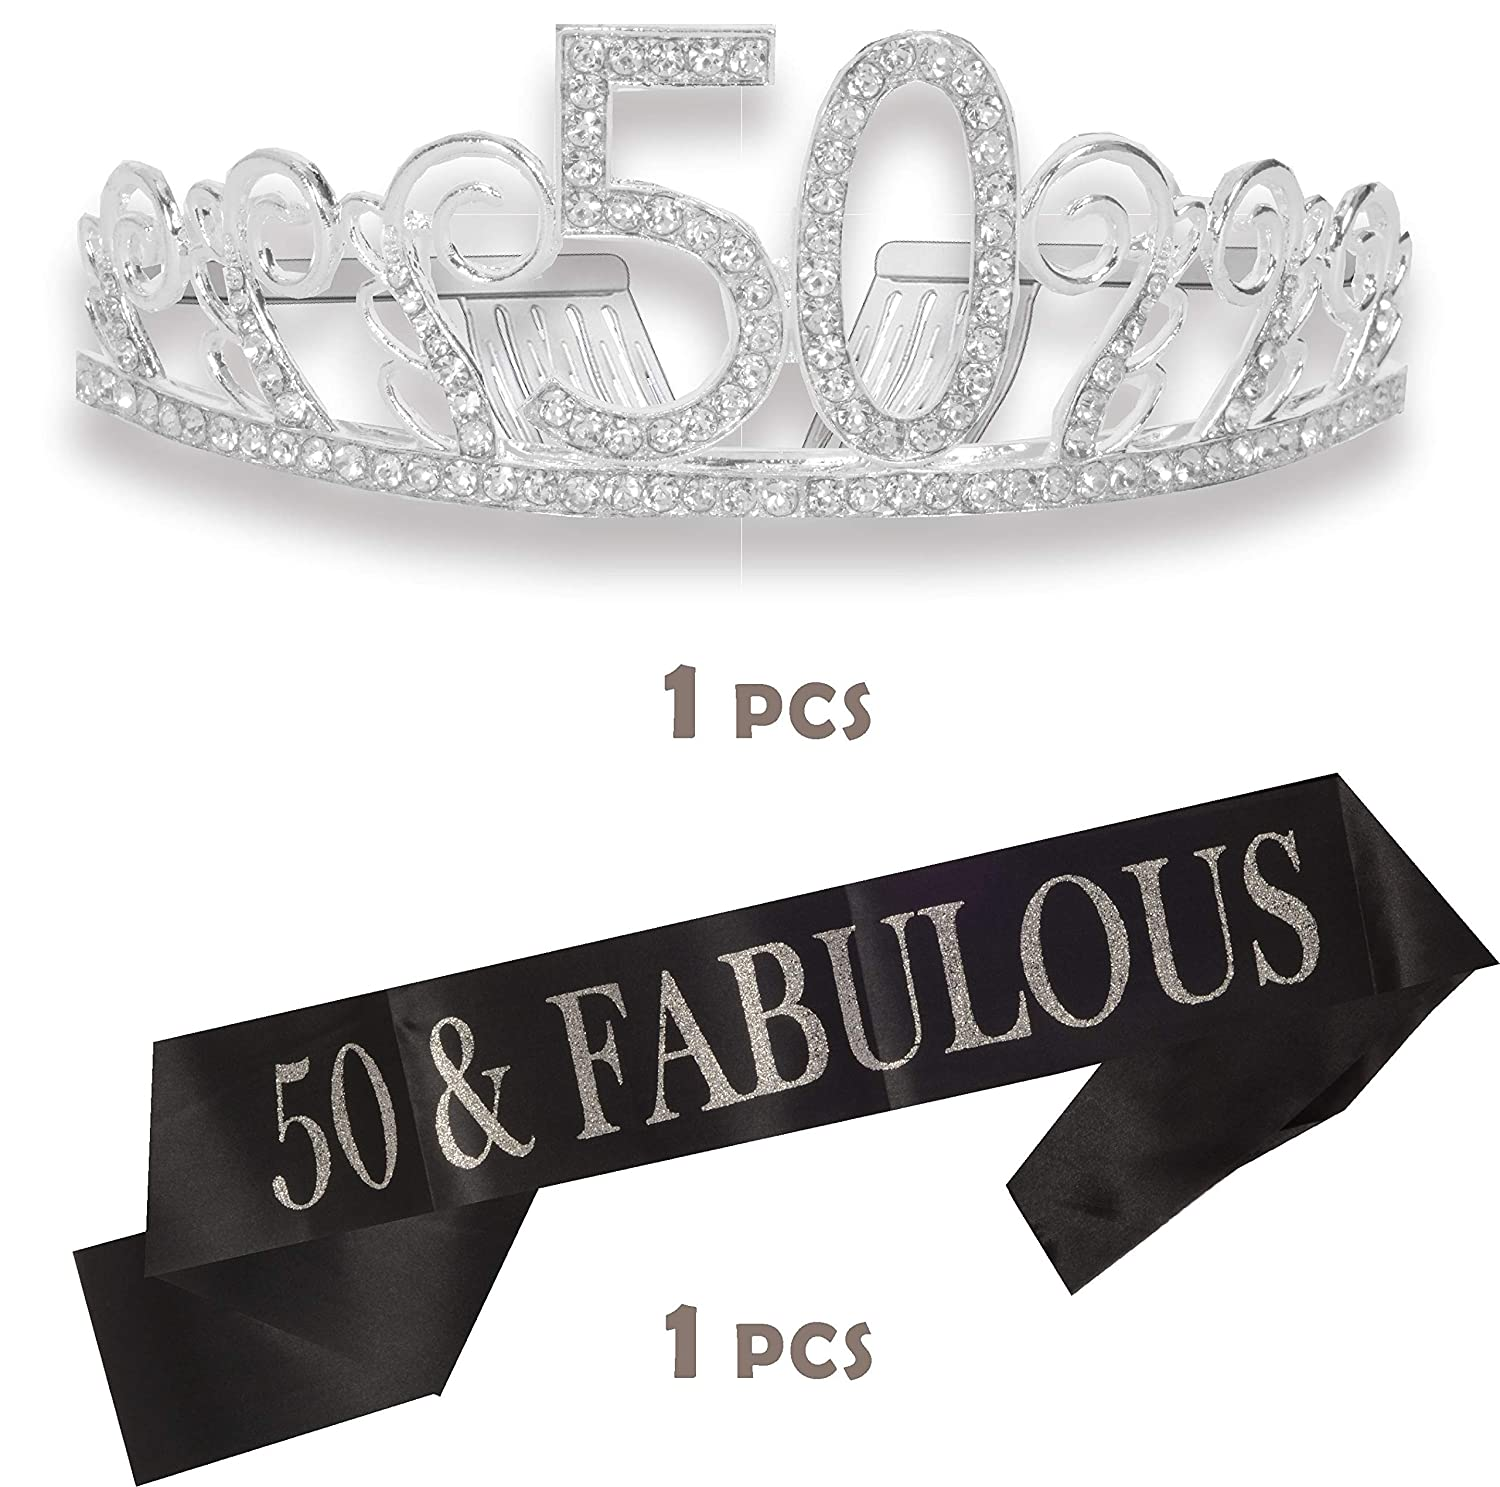 50th Birthday Tiara and Sash Happy 50th Birthday Party Supplies 50 /& Fabulous Black Glitter Satin Sash and Crystal Tiara Birthday Crown for 50th Birthday Party Supplies and Decorations